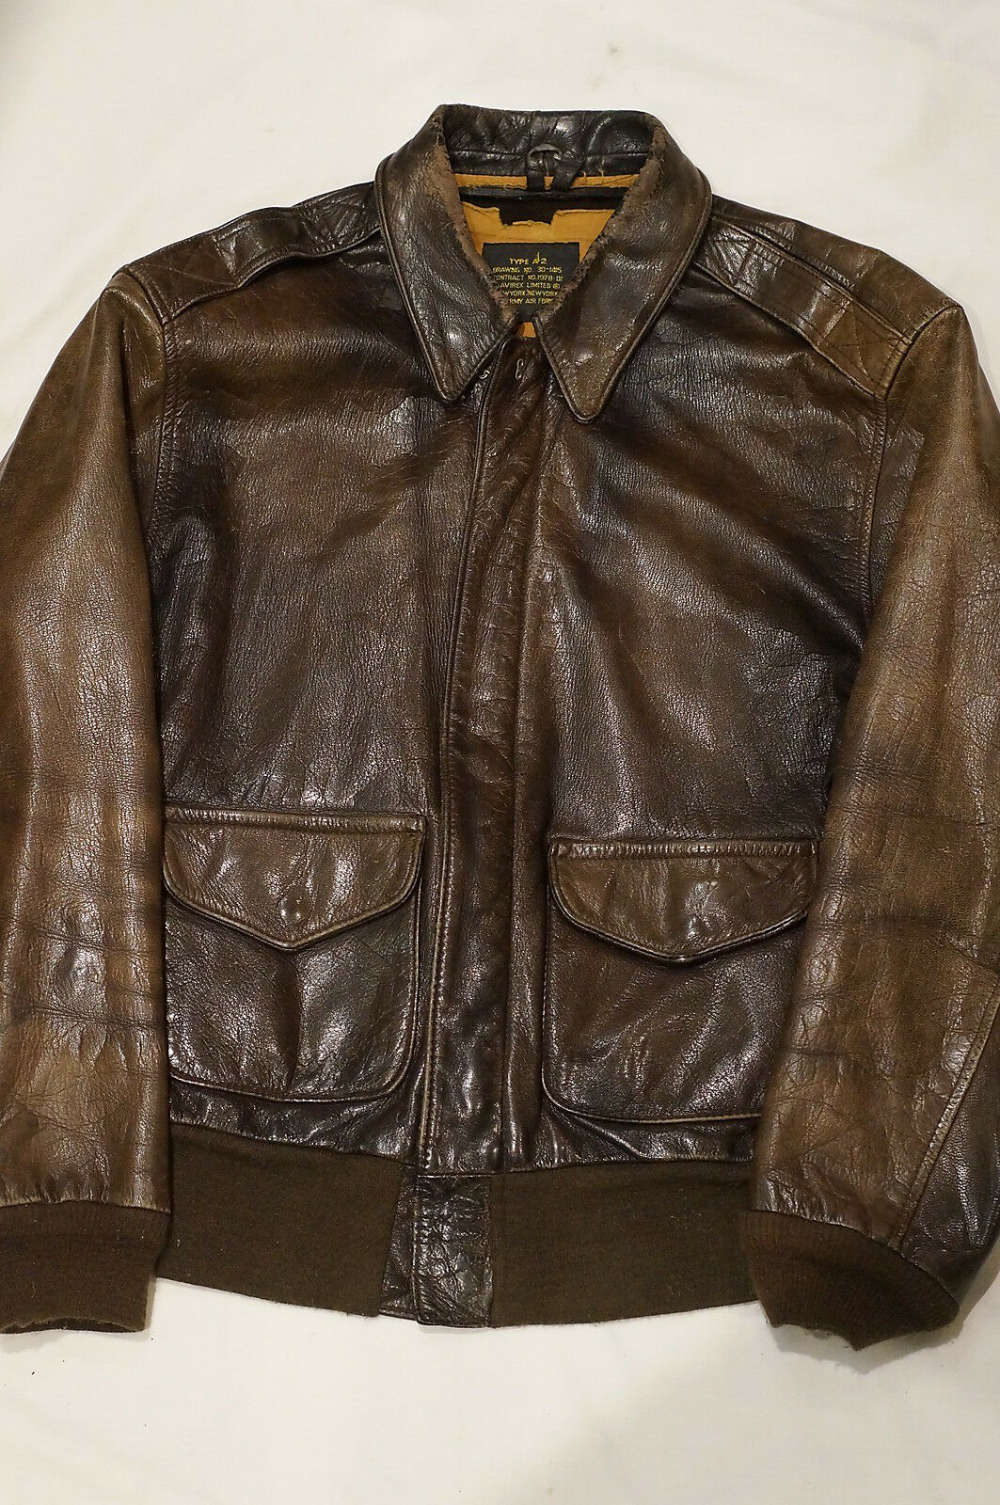 Us Army Air Force Usaaf A 2 Leather Bomber Flight Jacket Avirex Ebay Leather Bomber Flight Jacket Jackets [ 1505 x 1000 Pixel ]